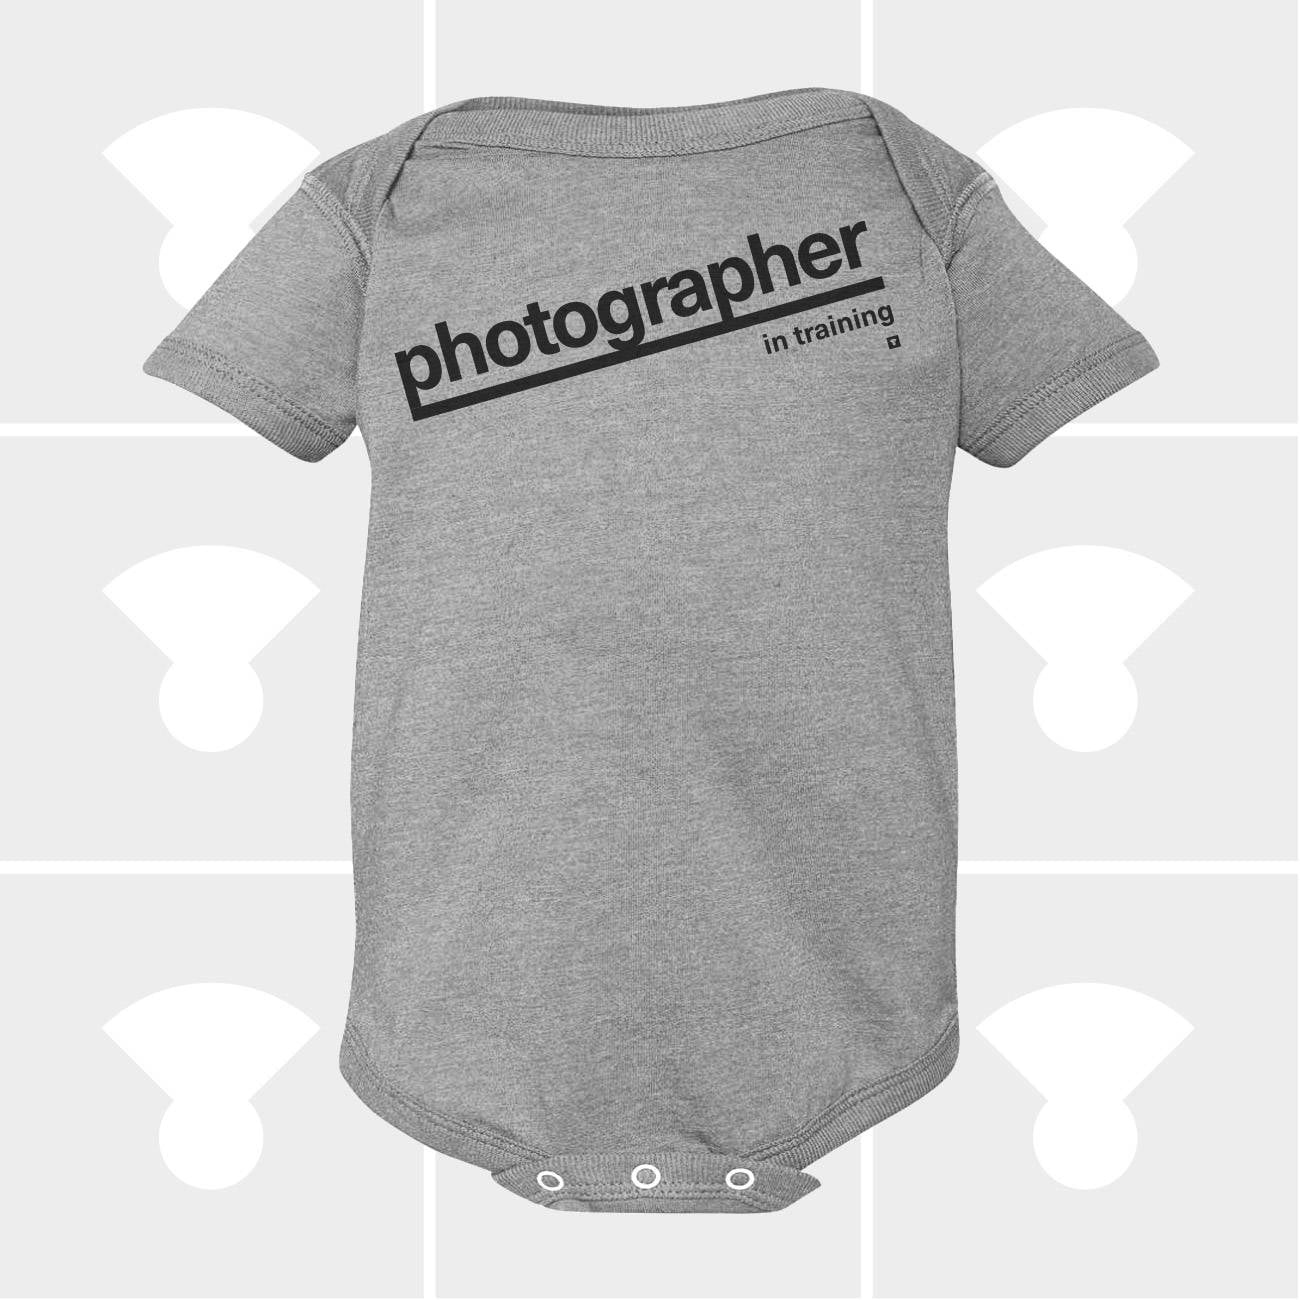 Photographer in training baby onesie